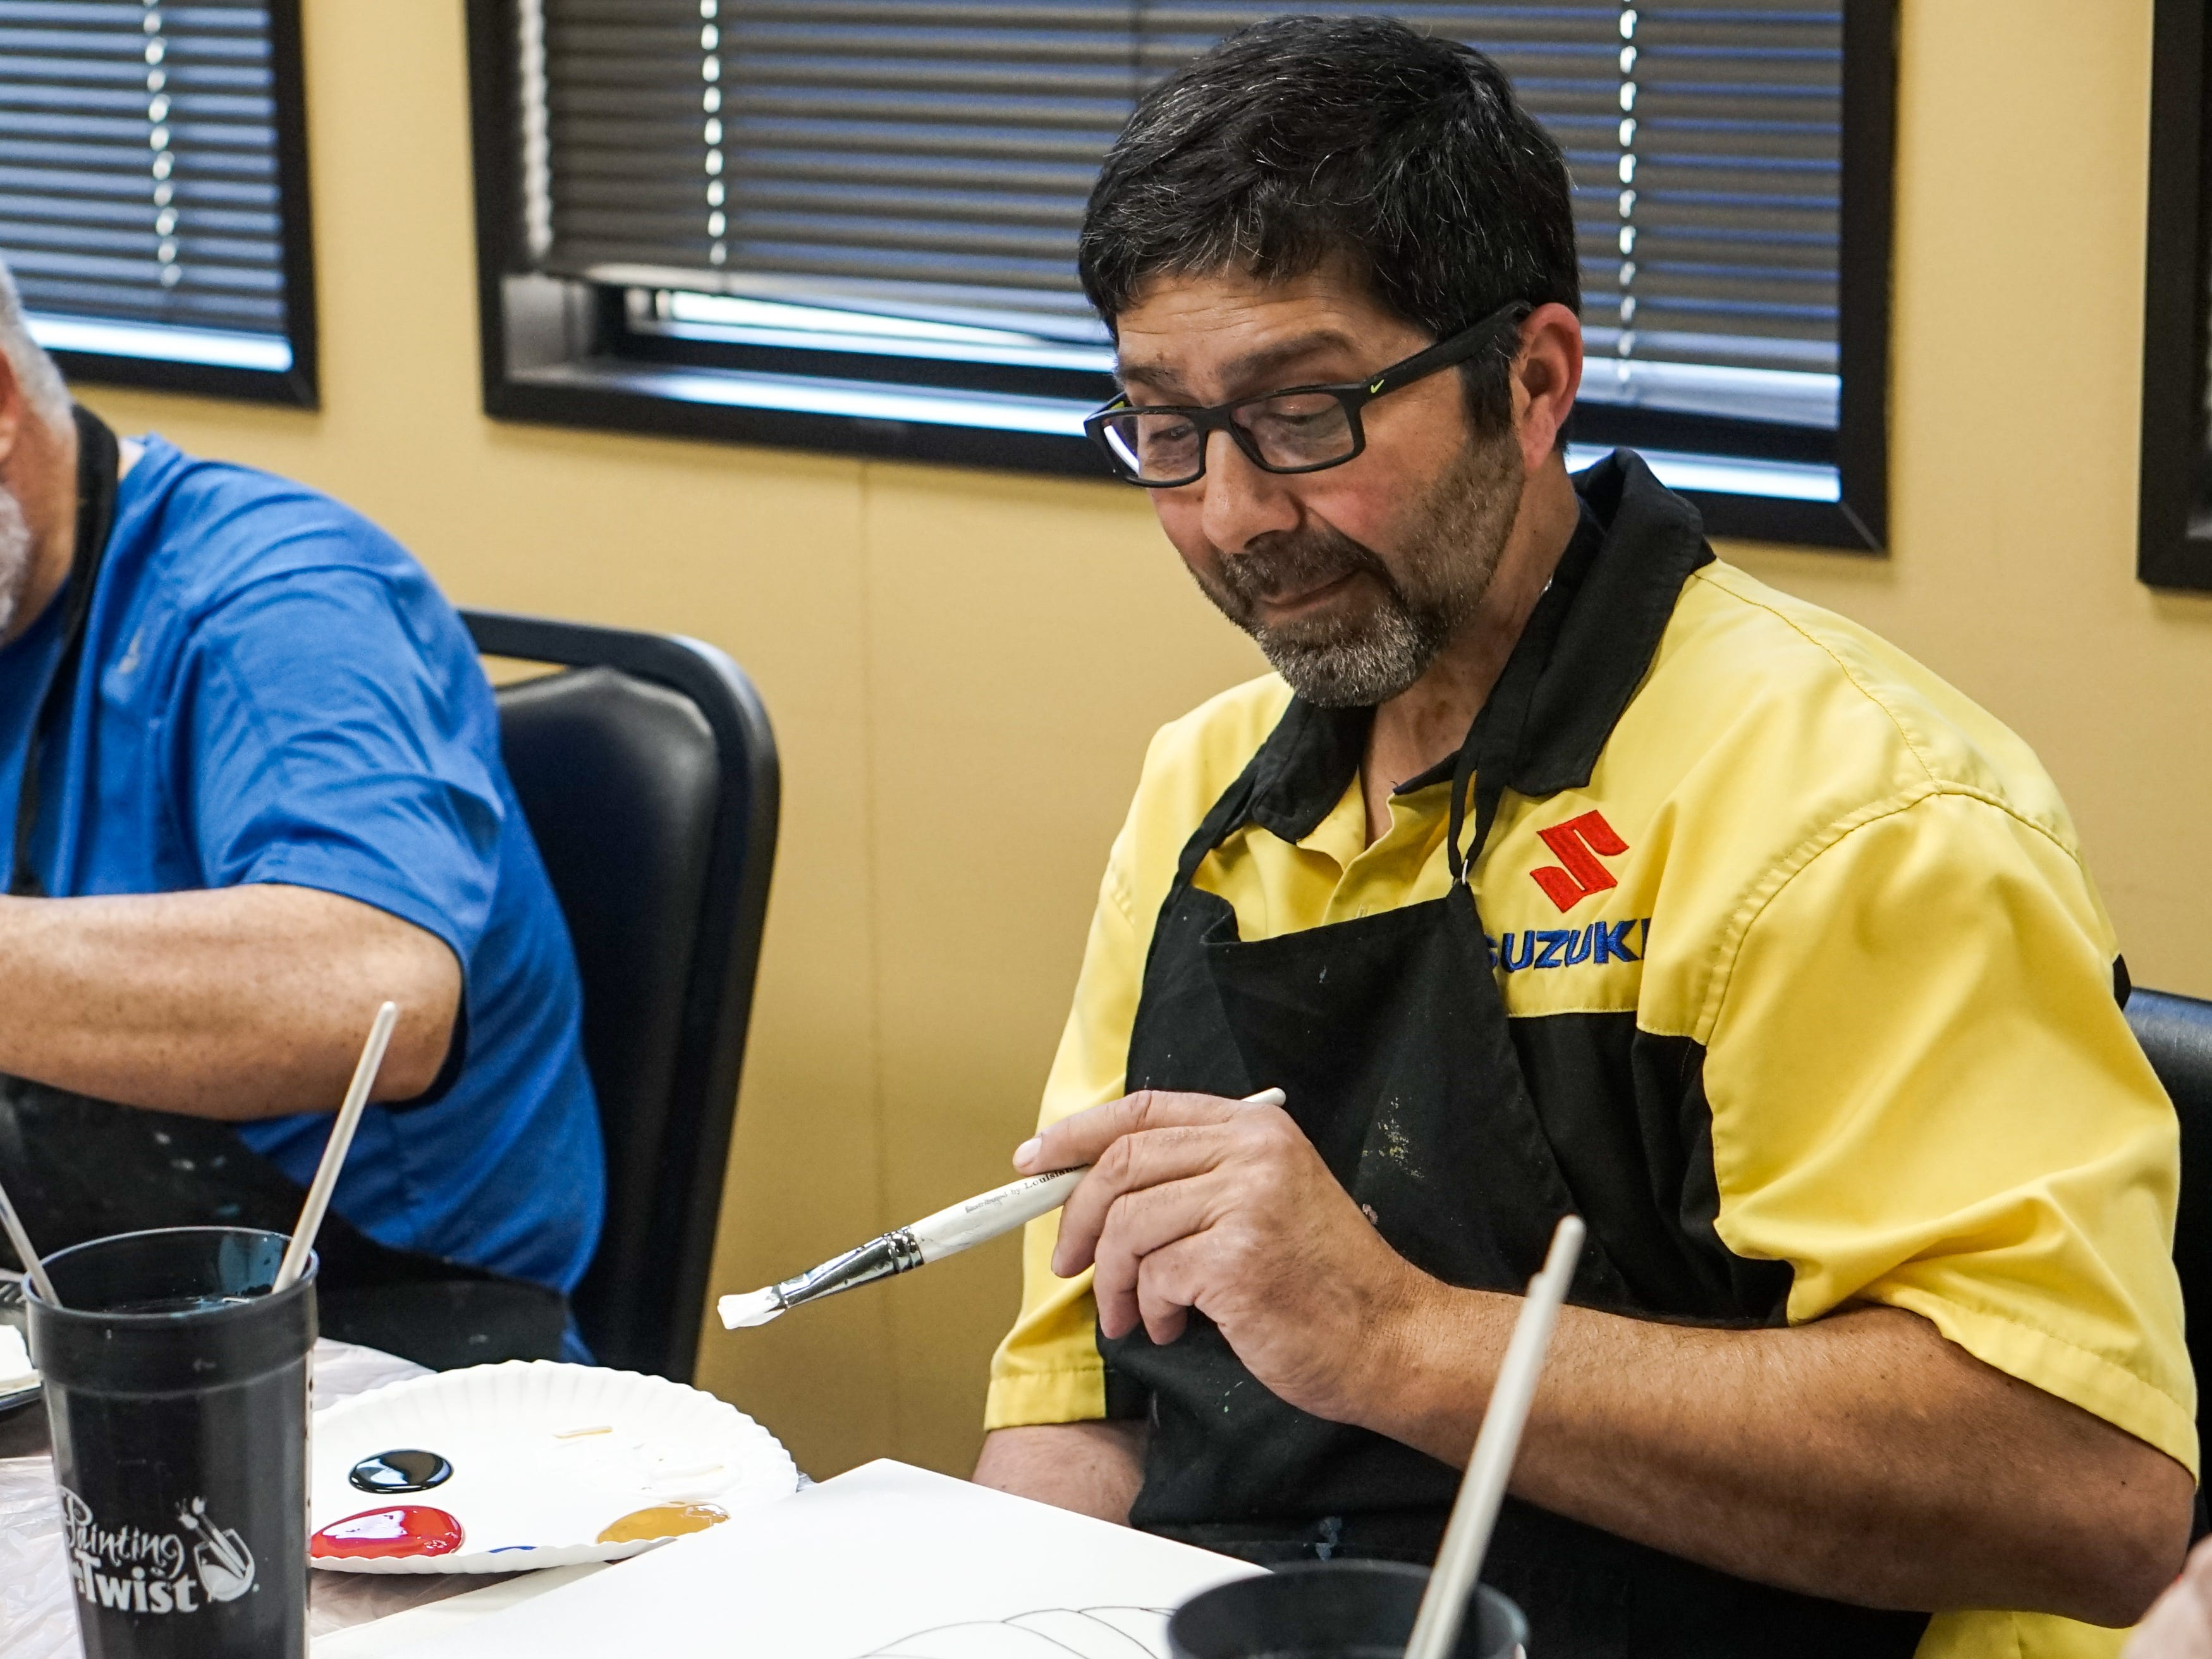 Former stroke patient Randy Young paints at an event in conjunction with Painting with a Twist Tuesday, May 14.